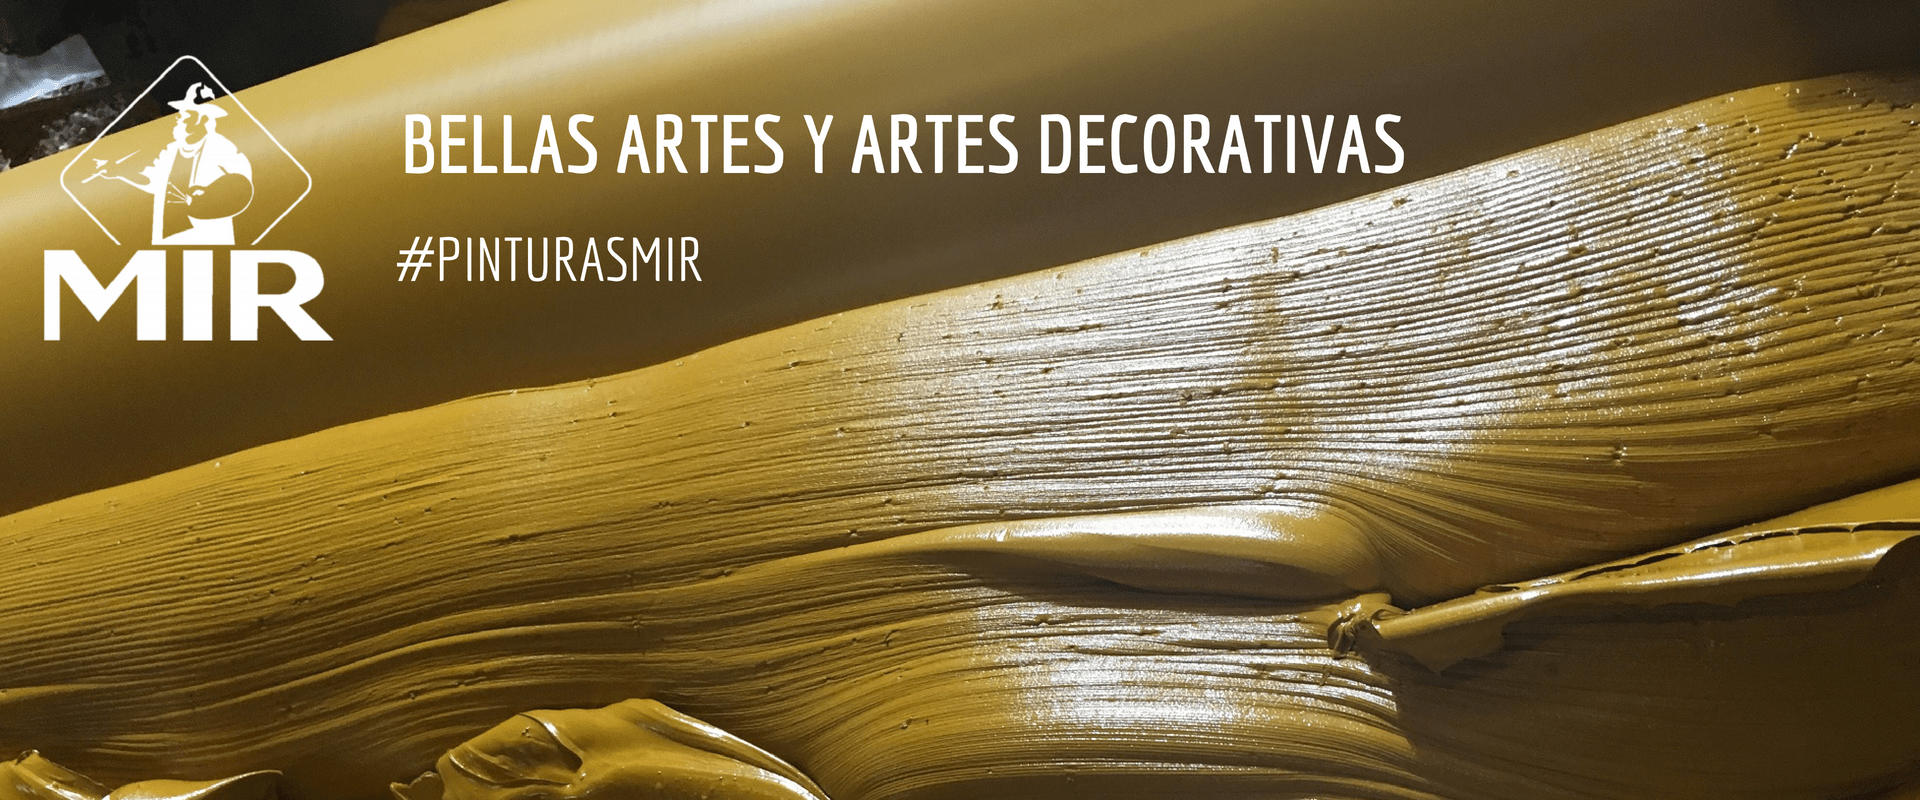 Bellas artes y artes decorativas